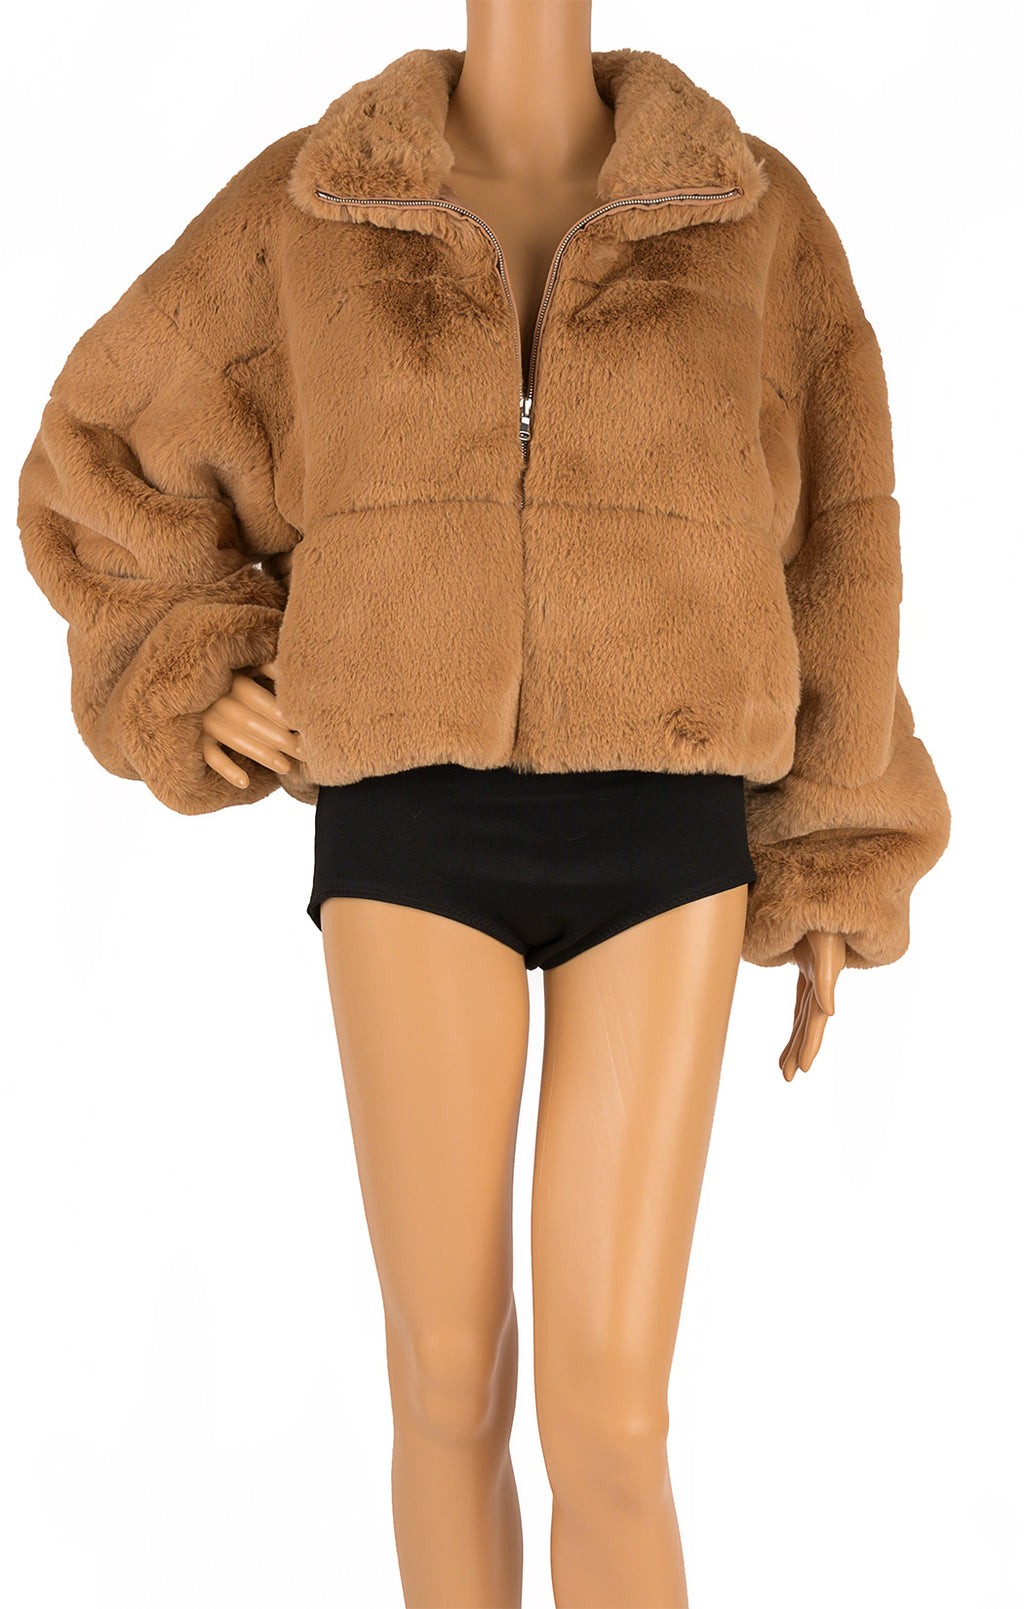 Front view of TIGER MIST Faux Fur jacket Size: Medium